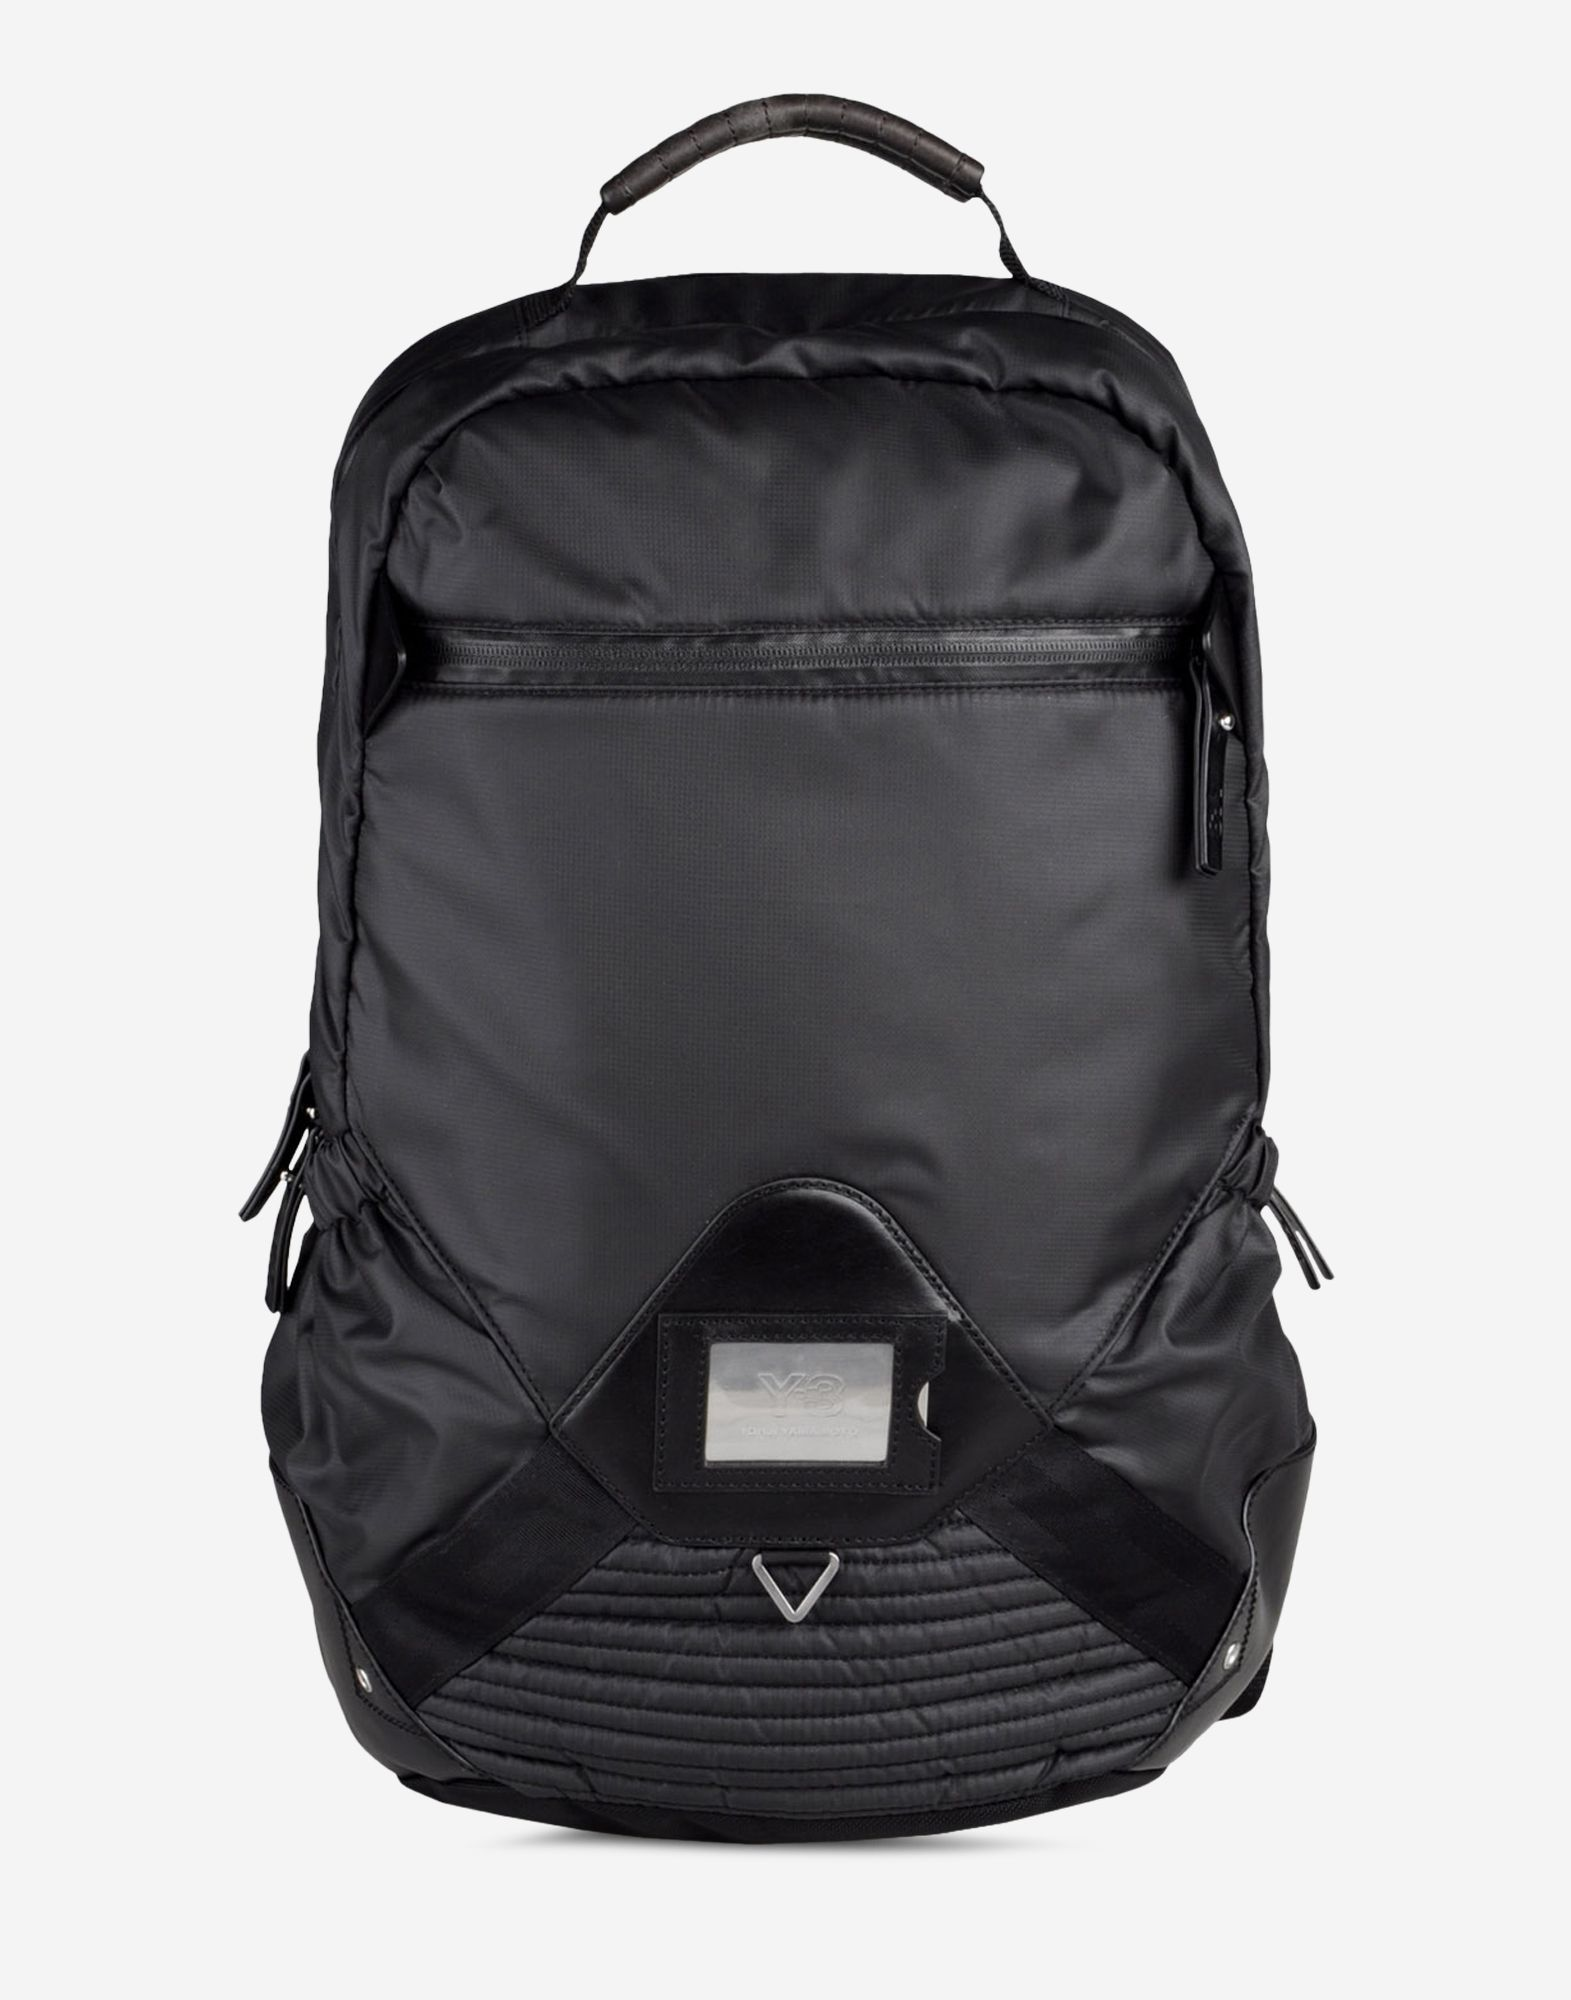 b68ceb72065 Y-3 Online Store -, Y-3 Mobility Backpack 2   Backpack Influence F15 ...